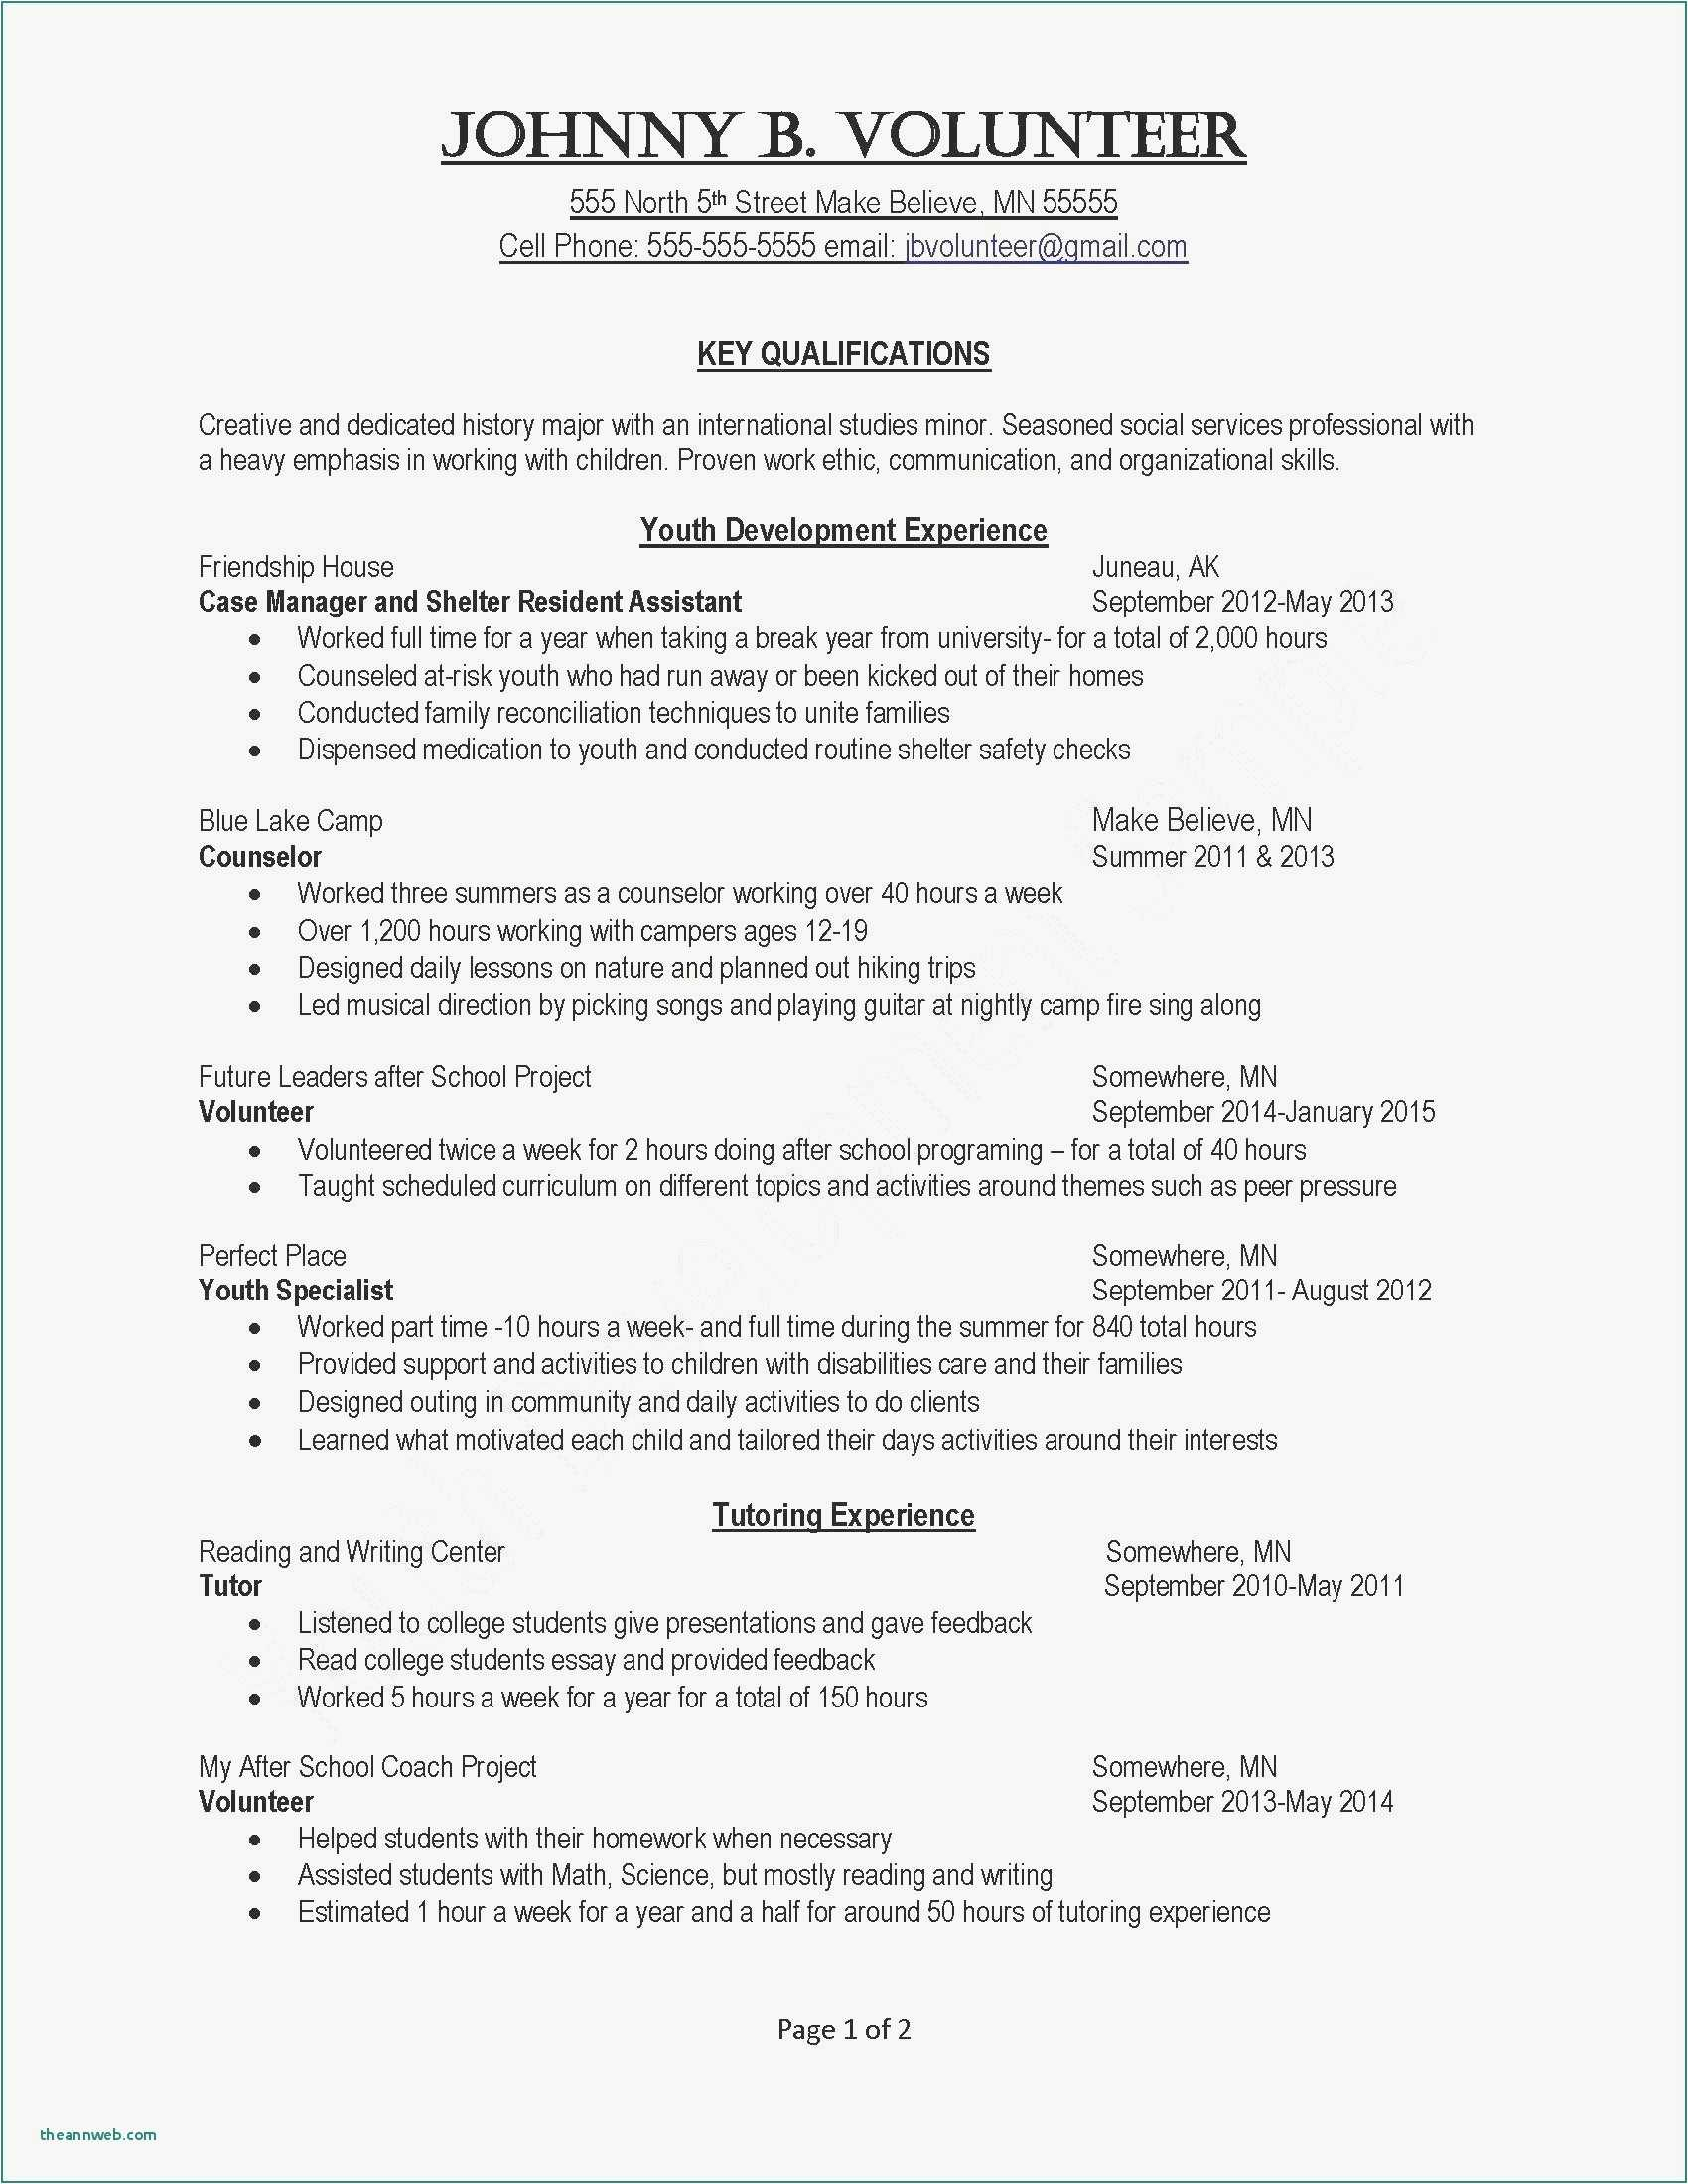 Resume Template Purdue - 29 Resume Exaples New